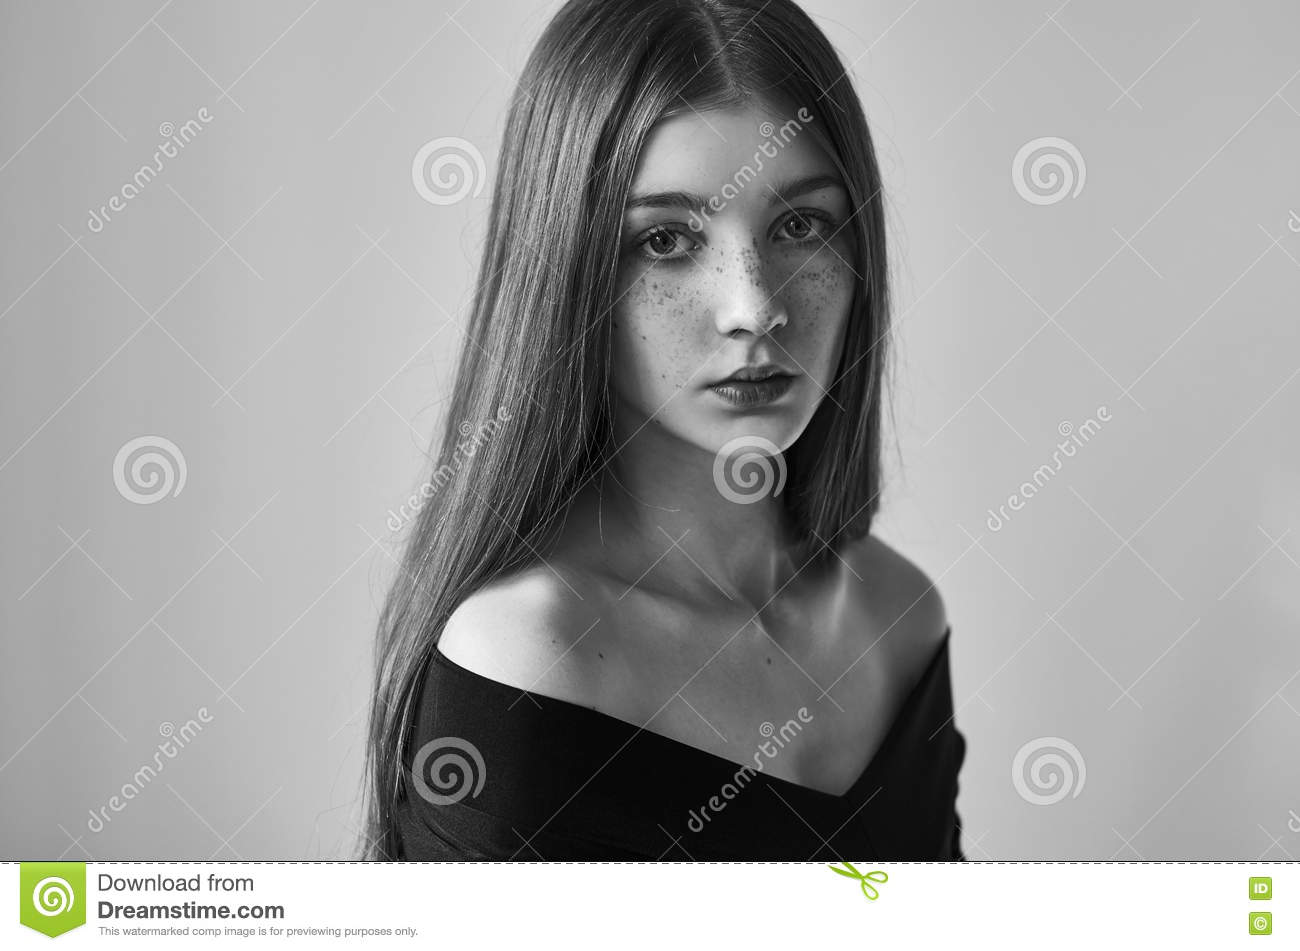 Dramatic black and white portrait of a beautiful lonely girl with freckles isolated on a white background in studio shot